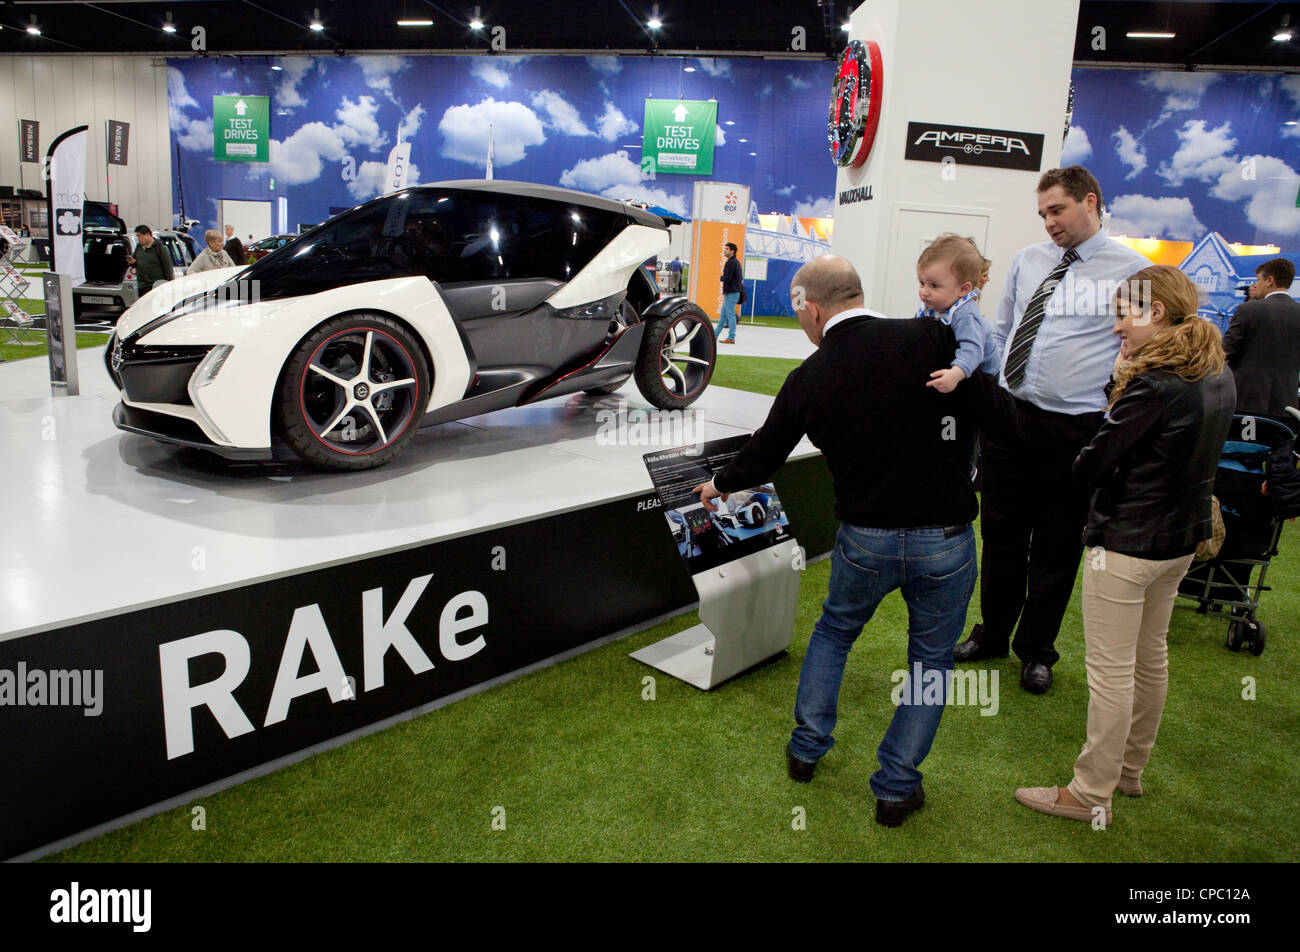 Vauxhall RAKe electric city car on display at EcoVelocity the low carbon motor event at Excel in London - Stock Image